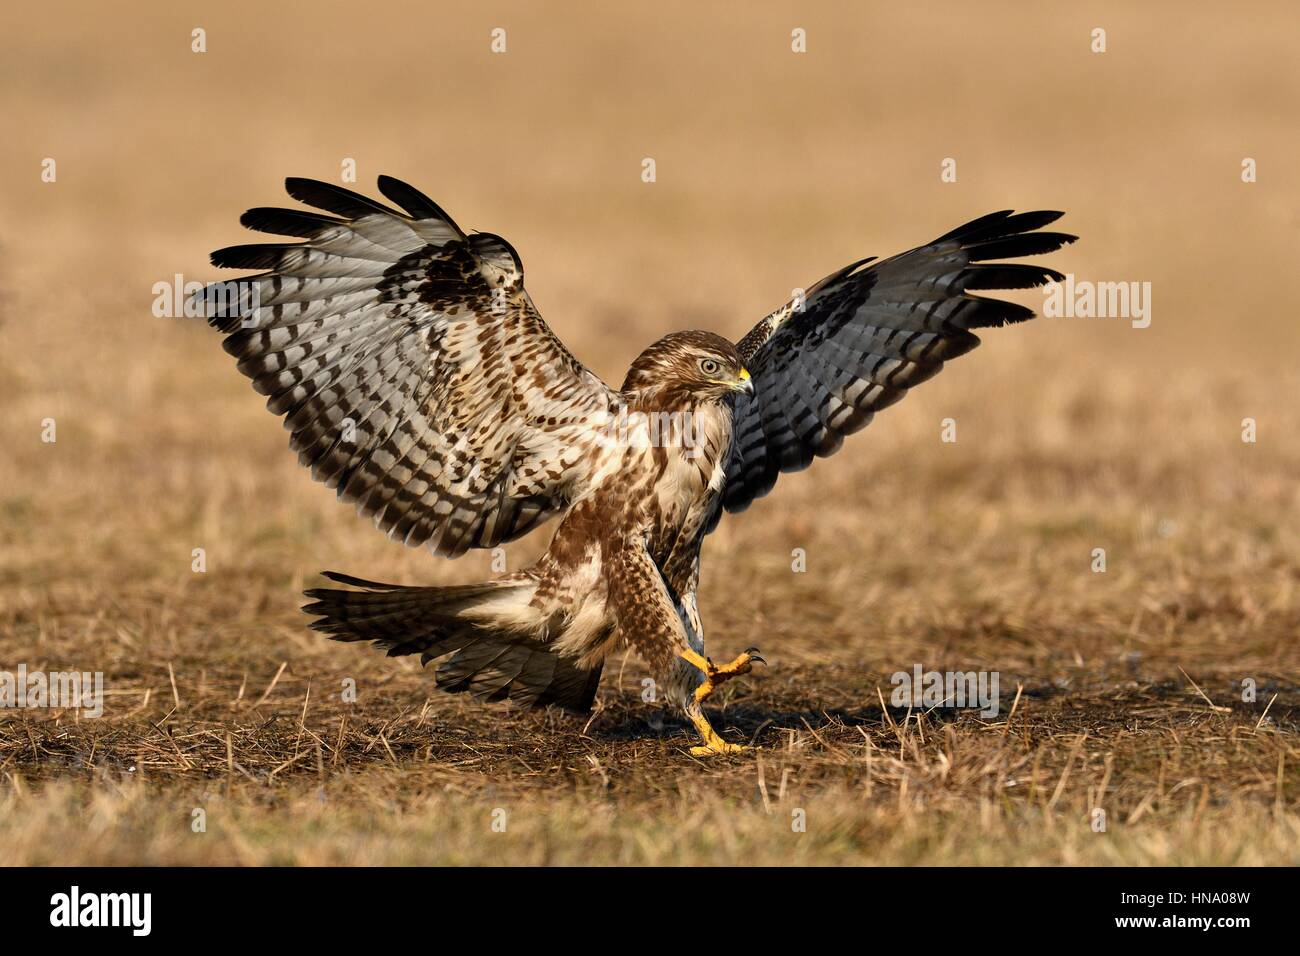 Buzzard (Buteo buteo) during approach, Lodz Province, Poland - Stock Image